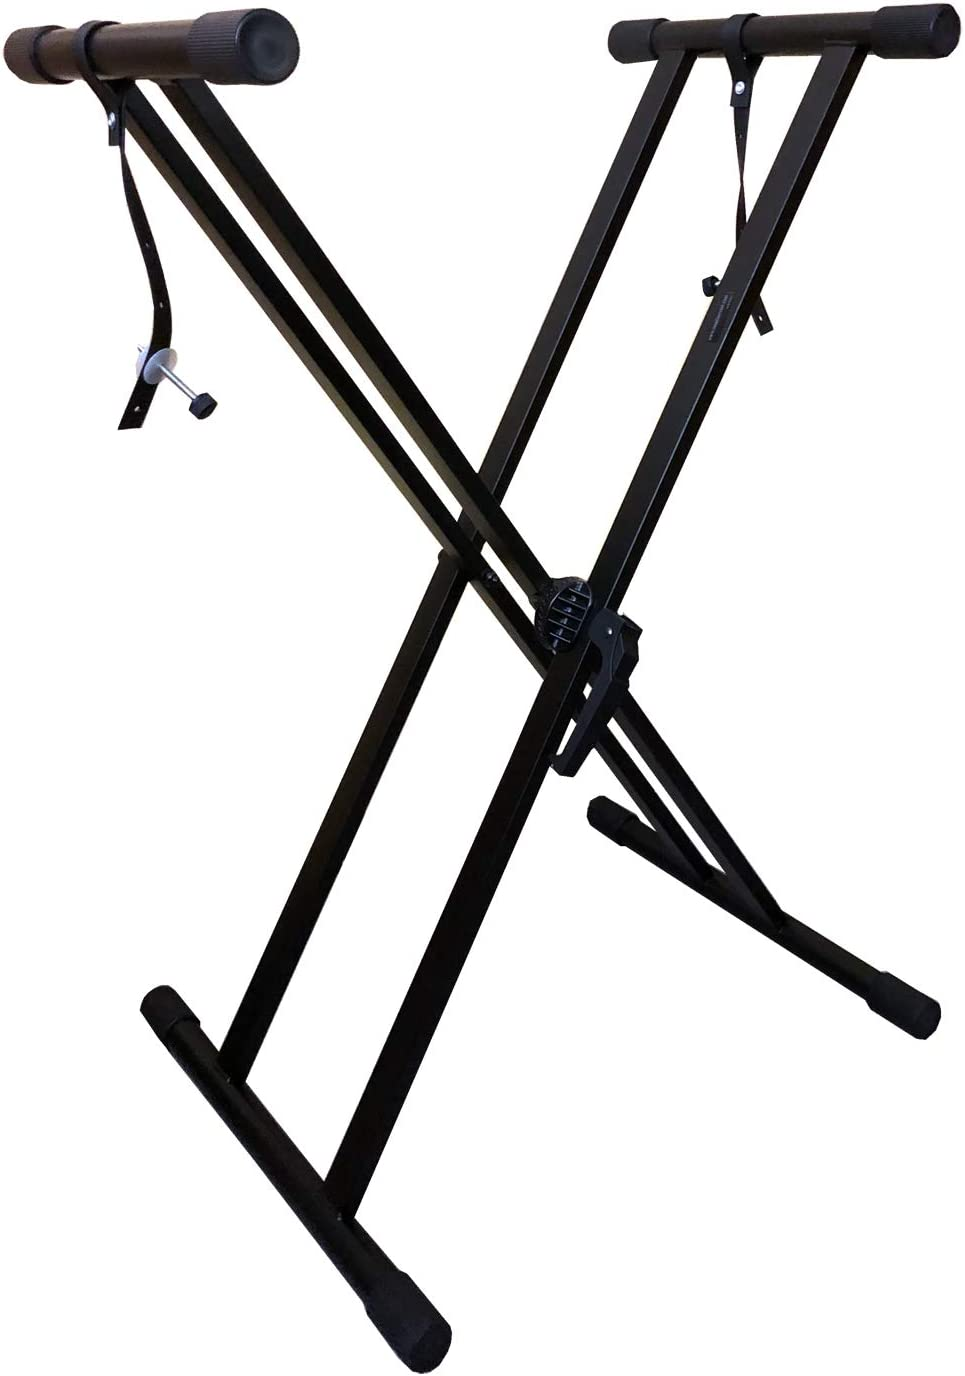 RockJam Xfinity Heavy-Duty, Double-X, Pre-Assembled, Infinitely Adjustable